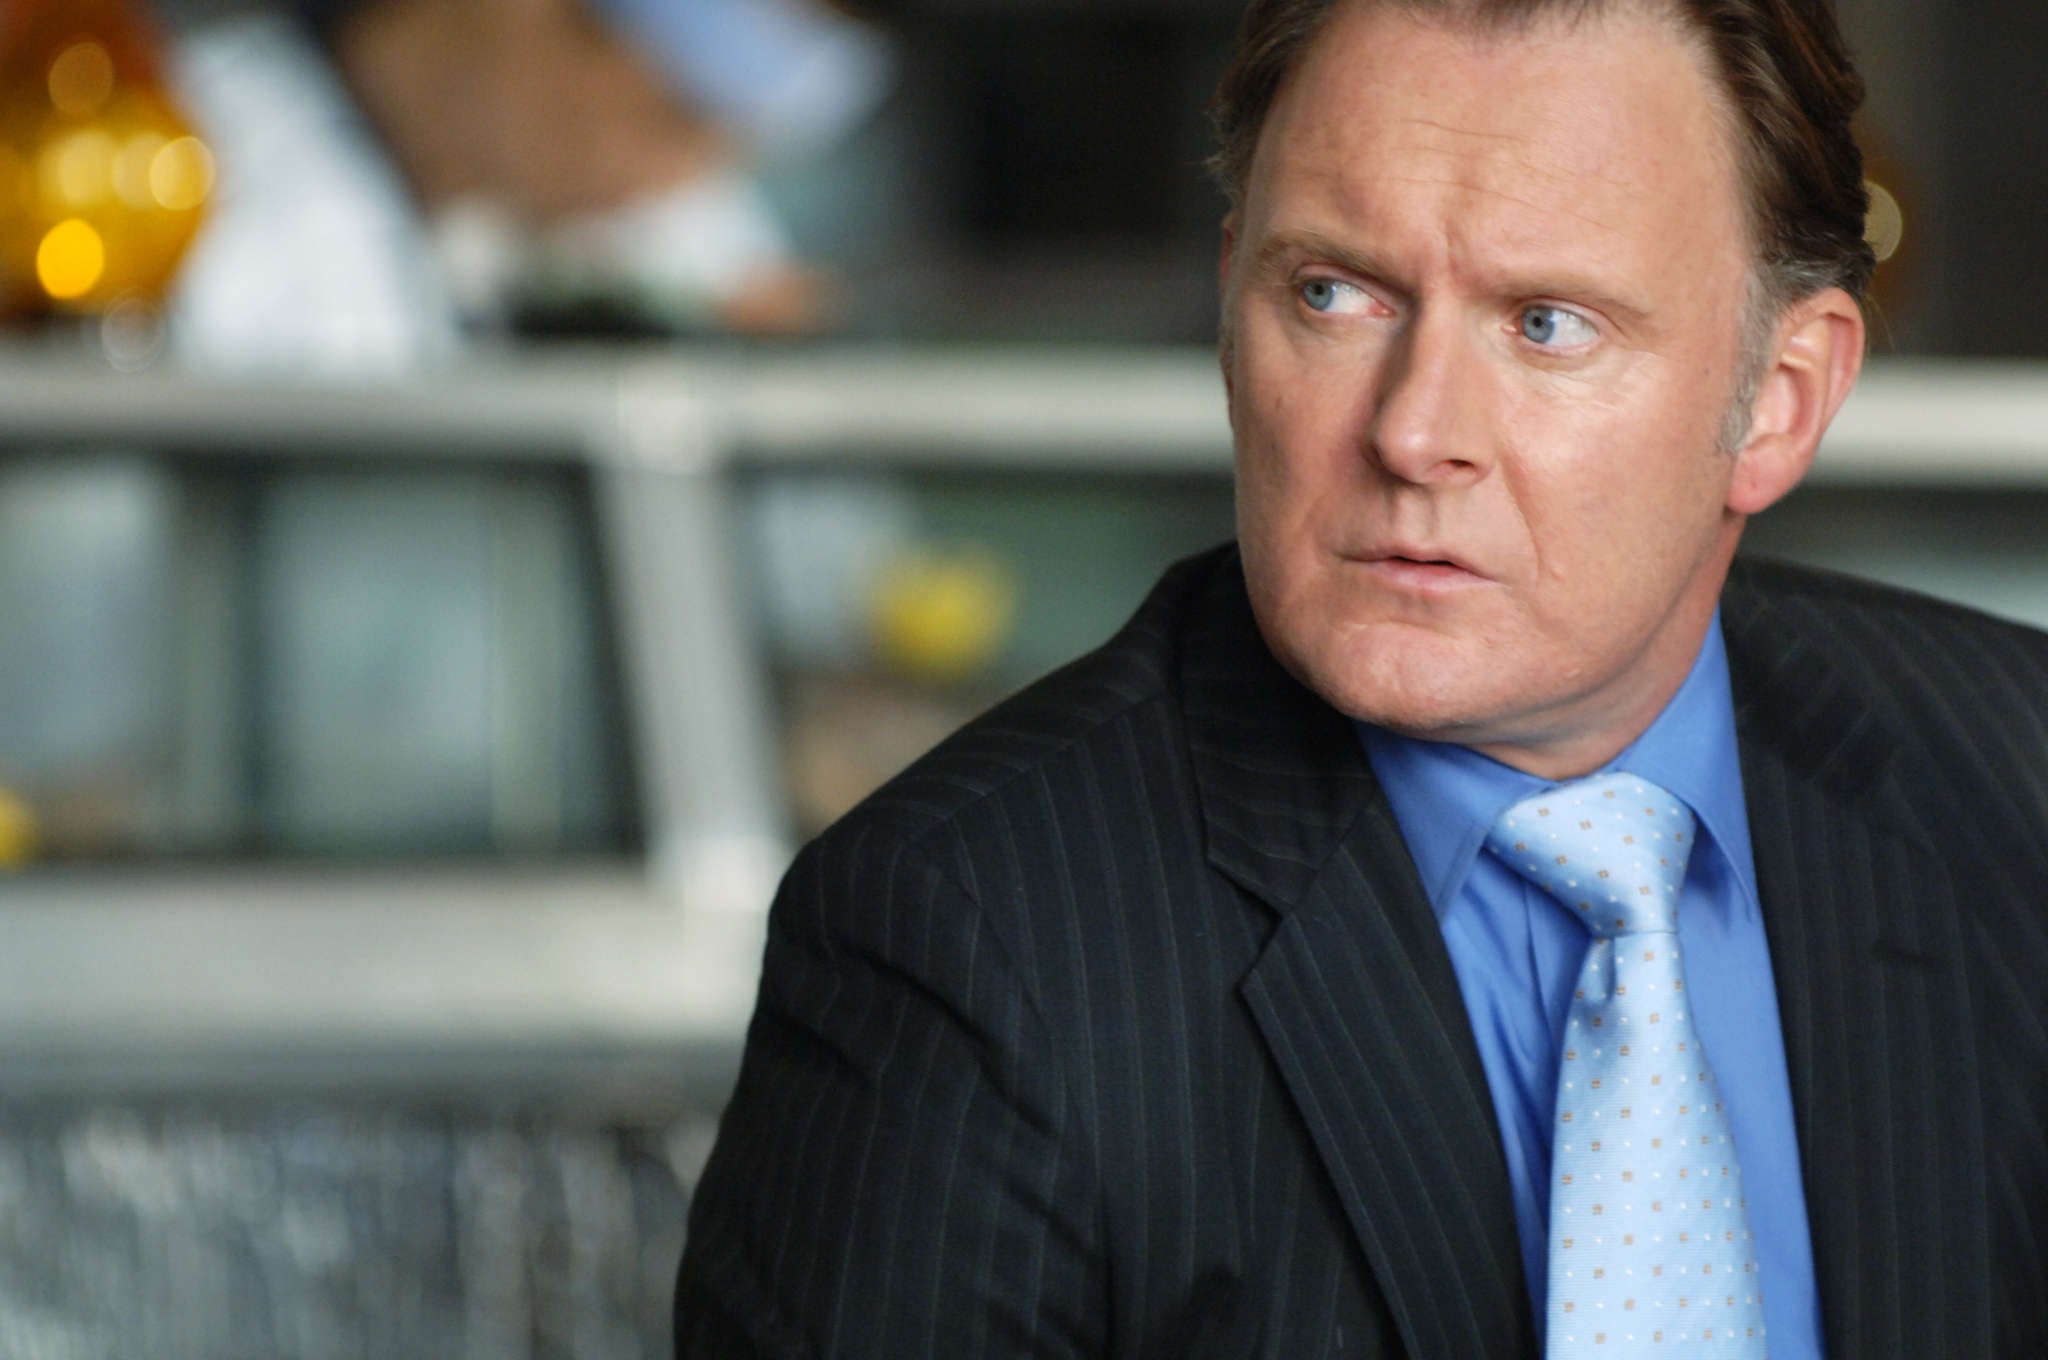 Robert Glenister (born 1960)